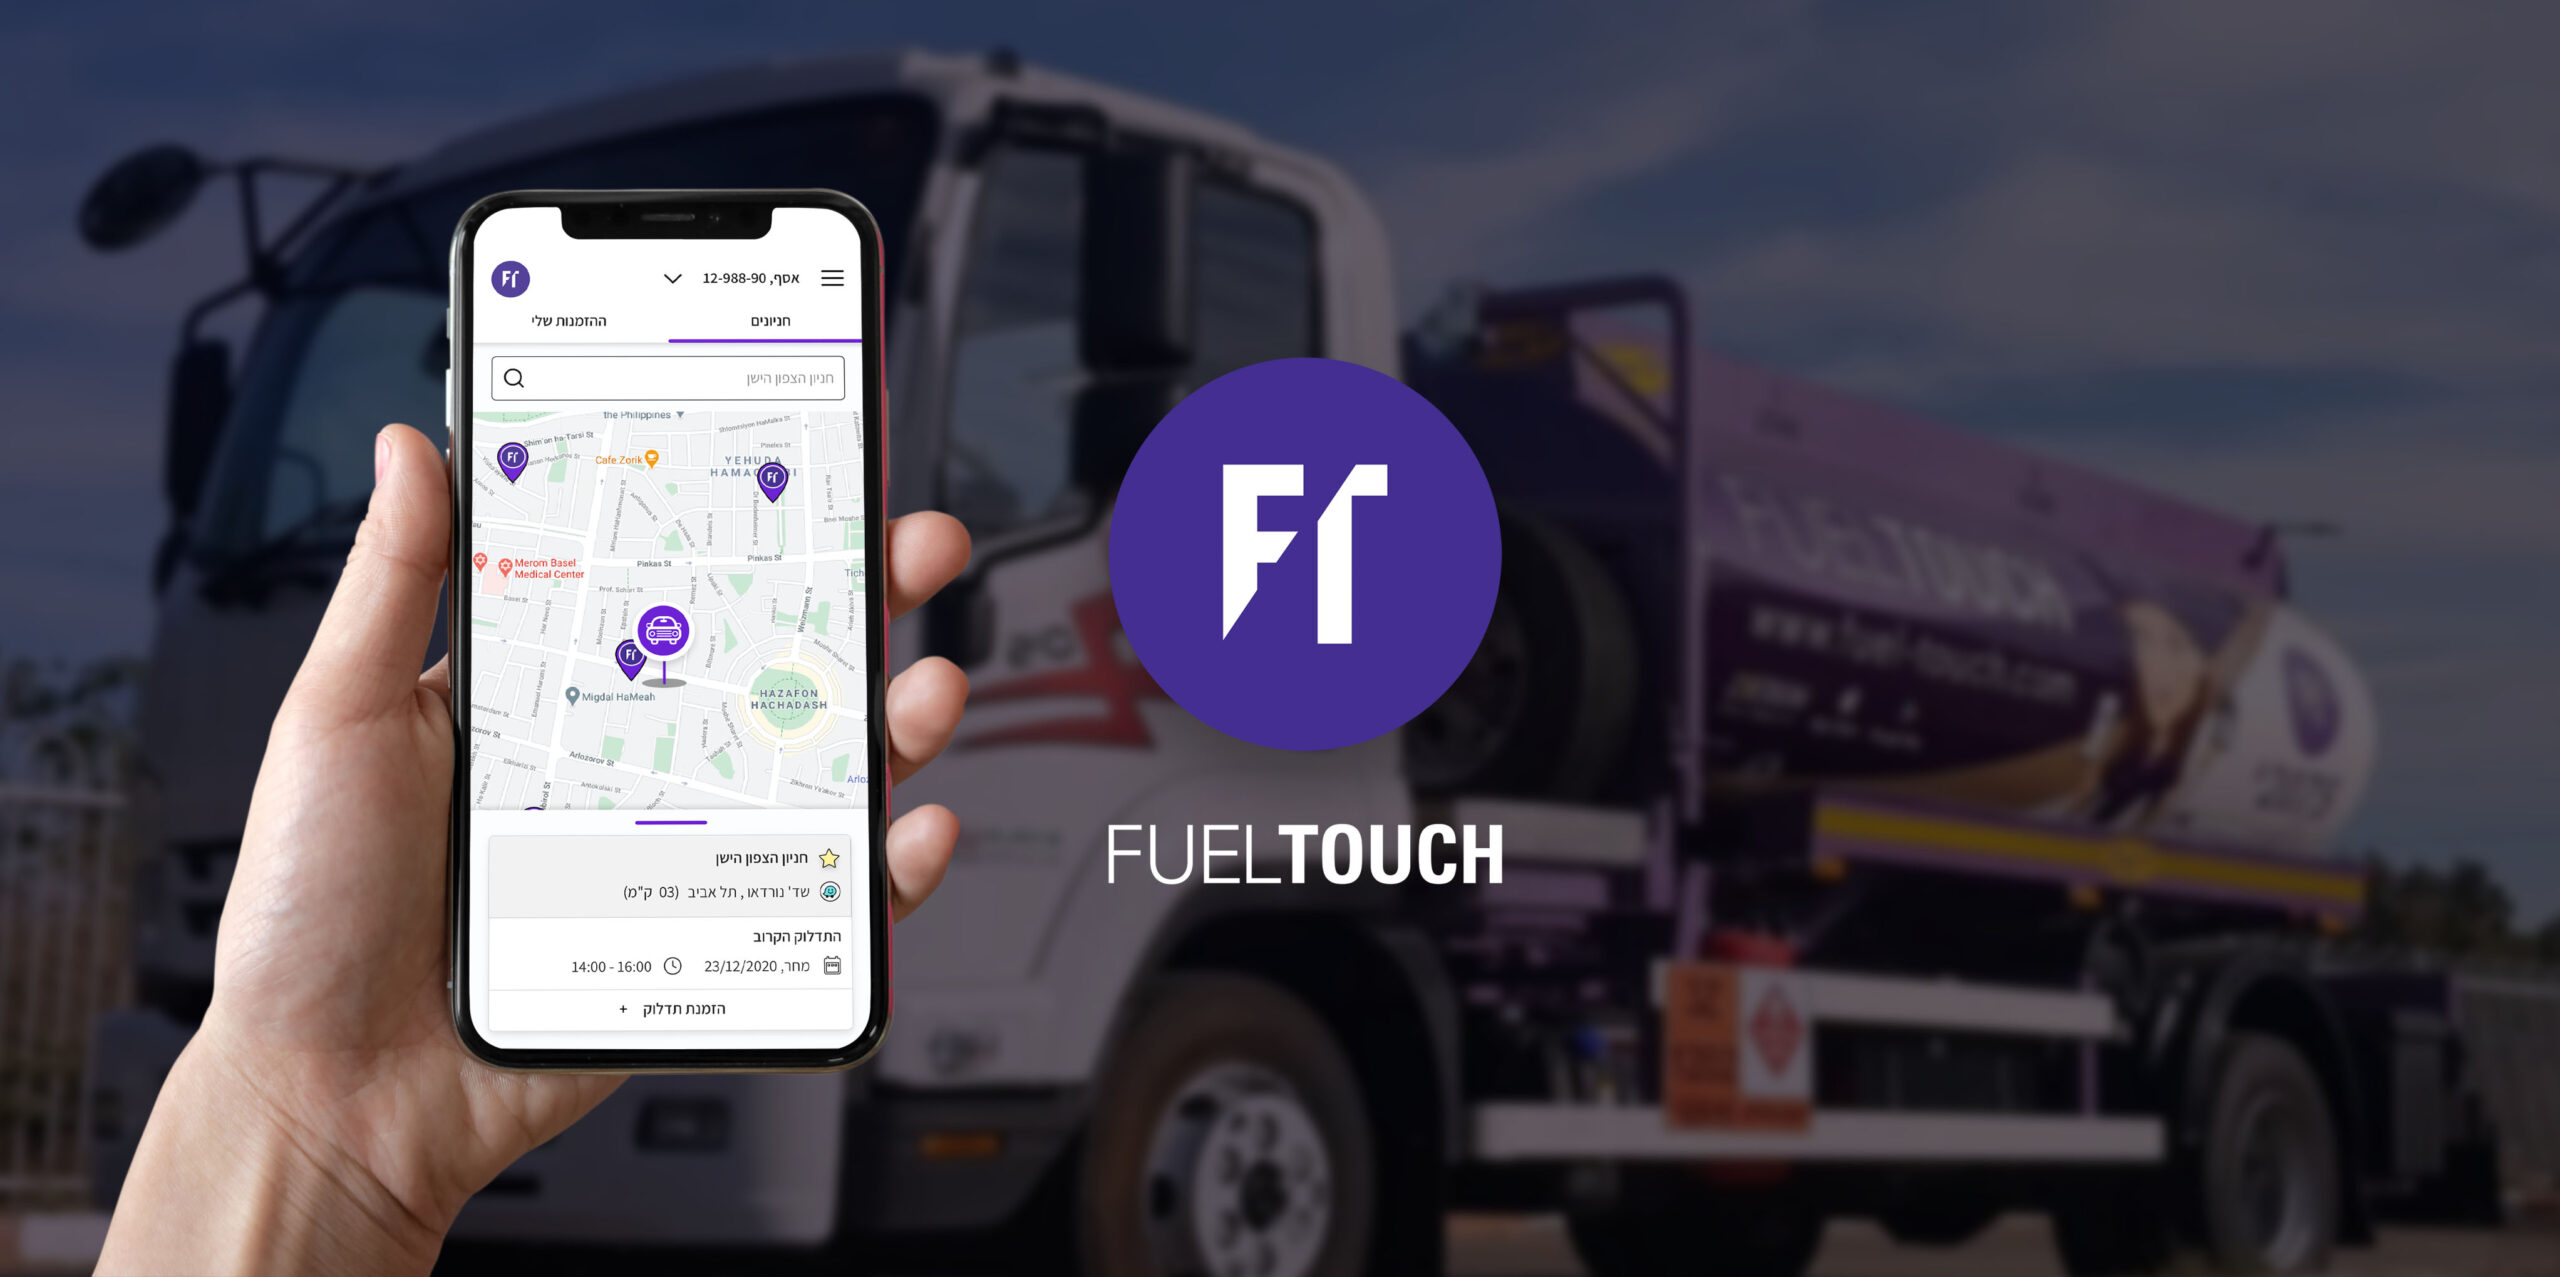 Fuel touch mockup